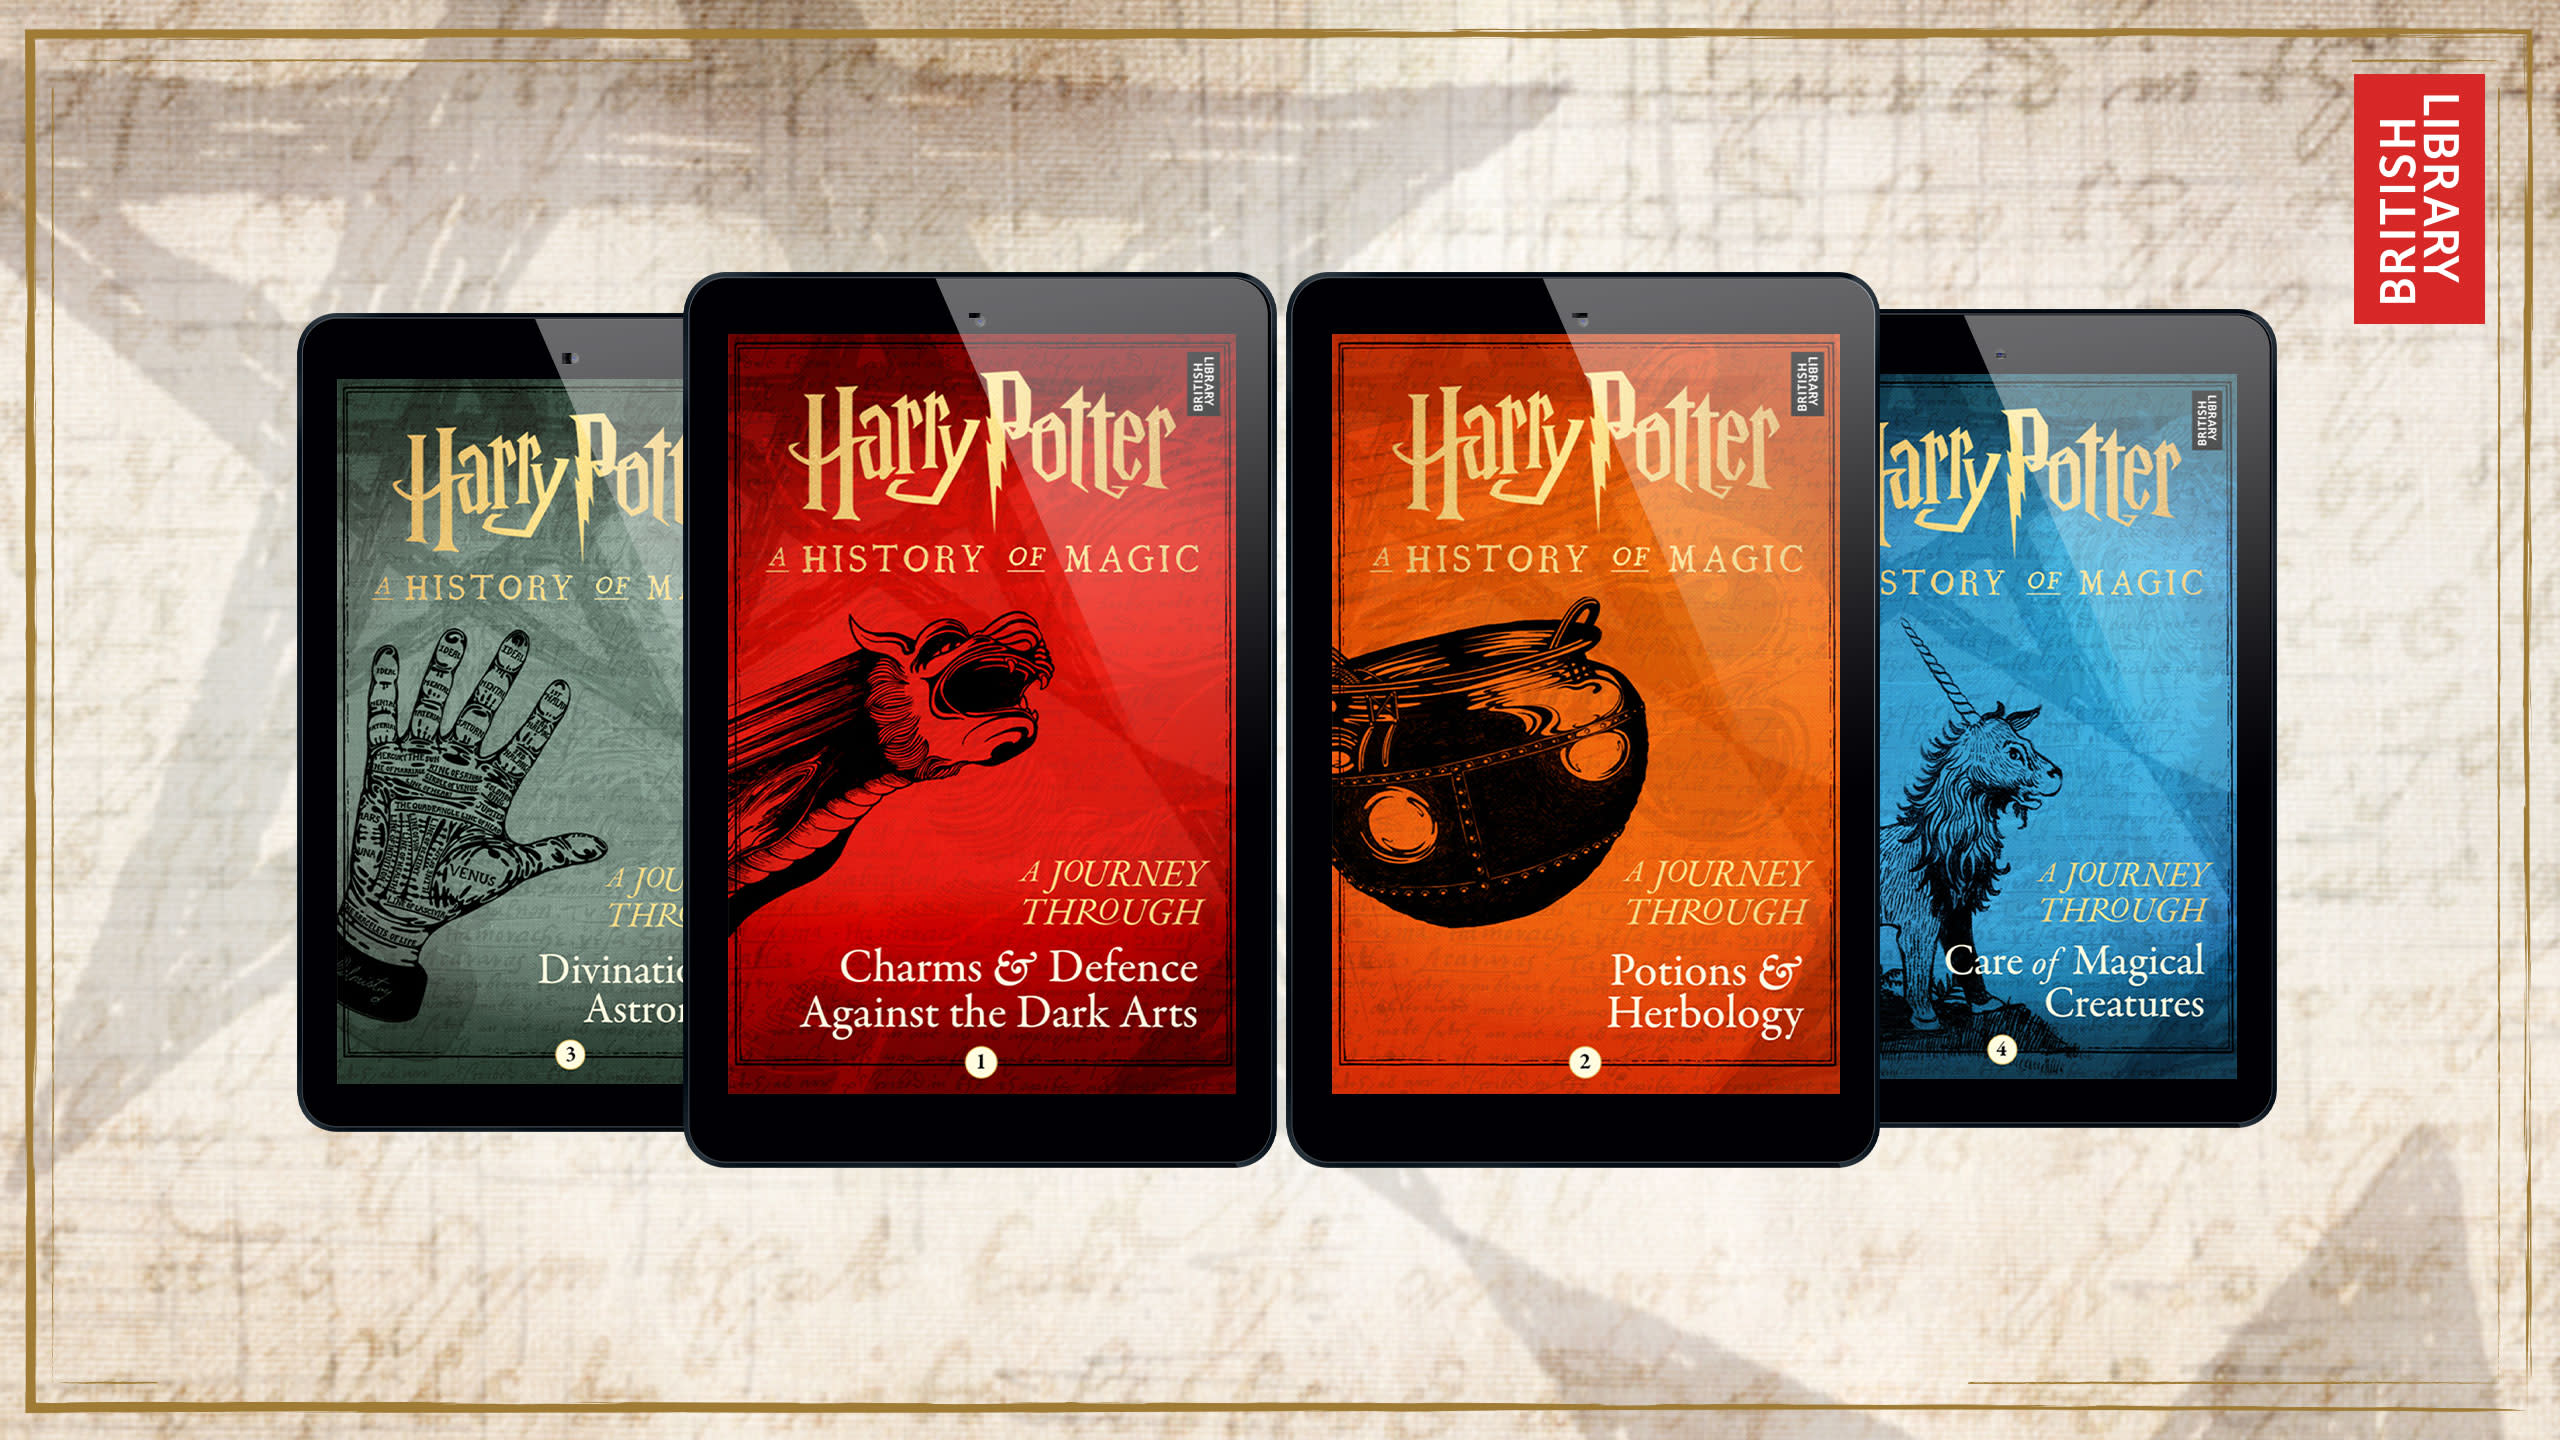 Harry Potter: A Journey Through... series homepage image